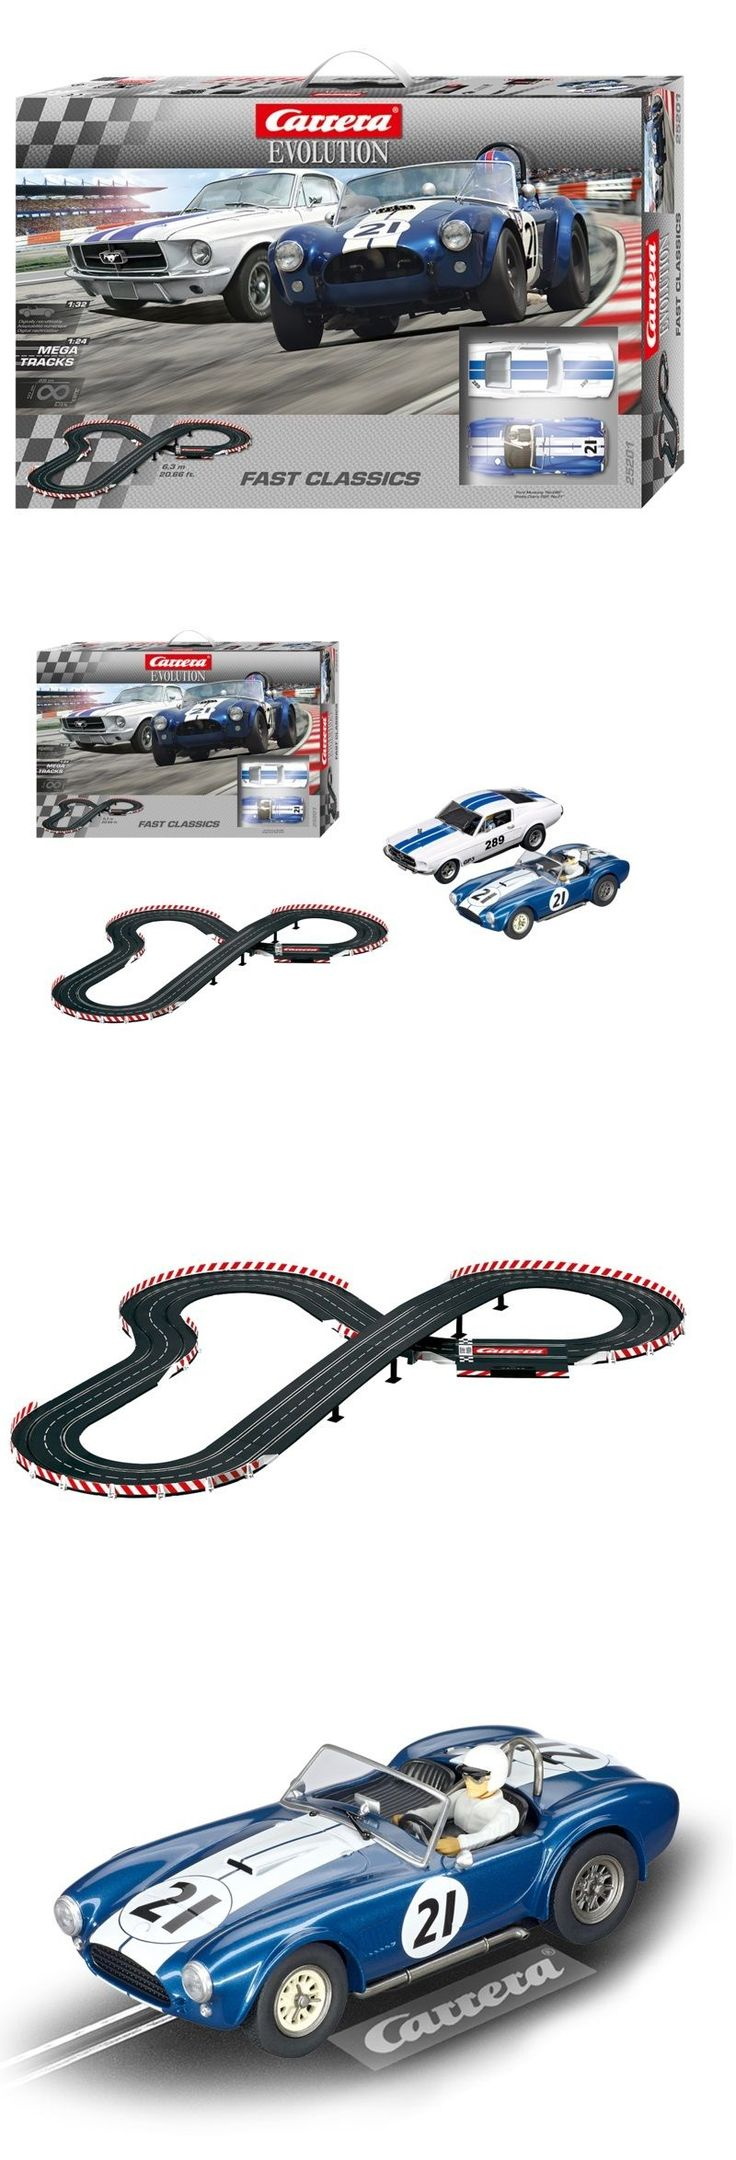 1970-Now 4781: Carrera 25201 Fast Classics Shelby Cobra Mustang Evolution 1 32 Slot Car Set -> BUY IT NOW ONLY: $152.49 on eBay!